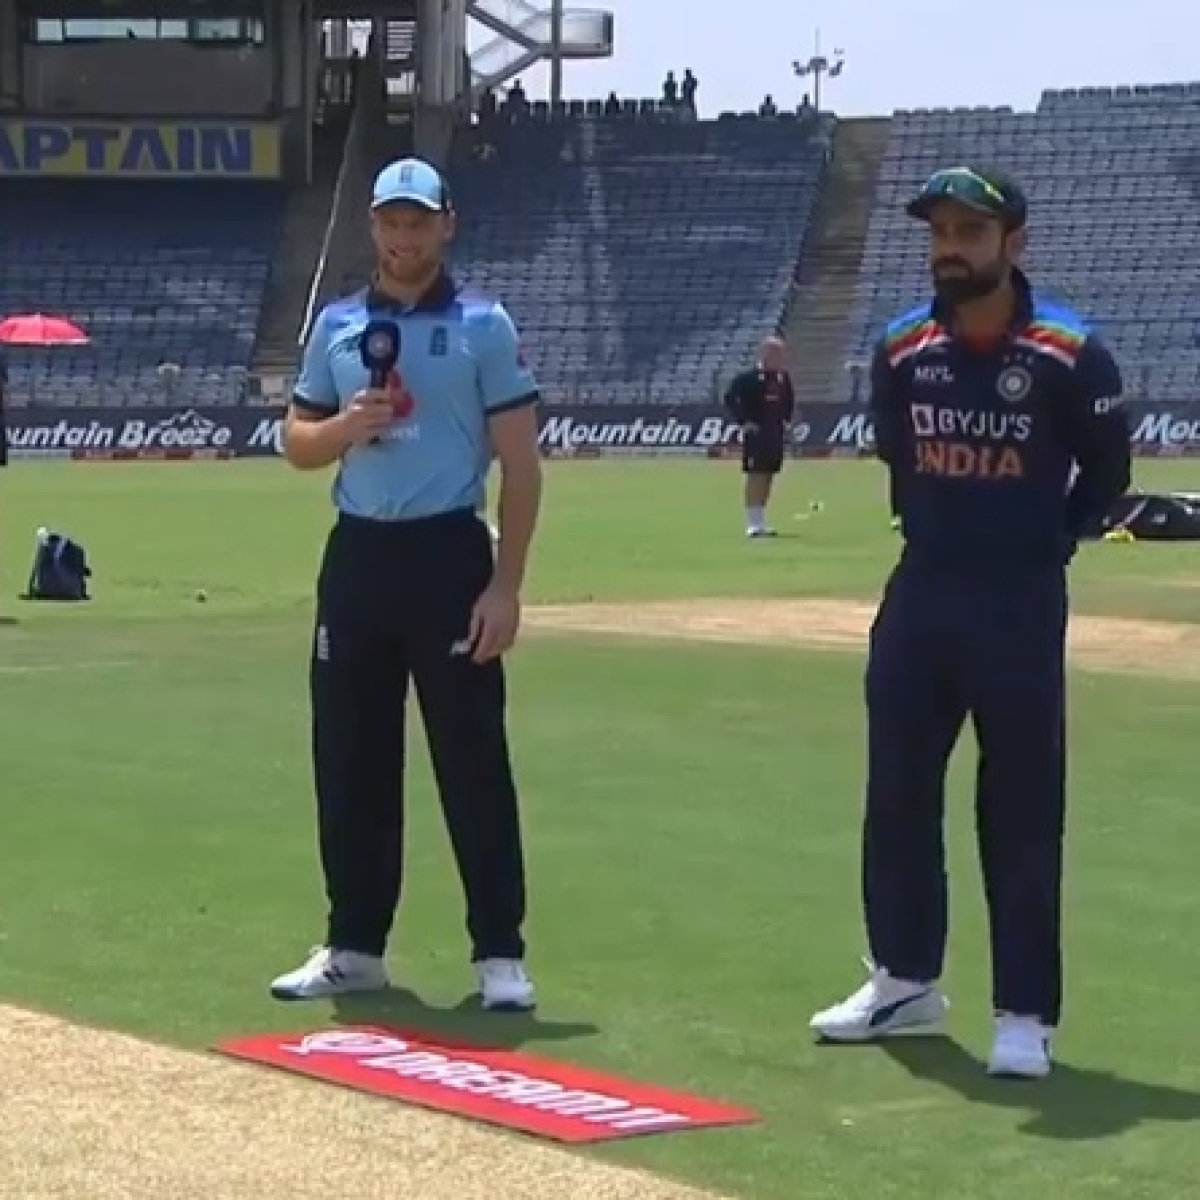 Ind vs Eng, 3rd ODI: England opt to field against India in series decider; Natarajan replaces Kuldeep